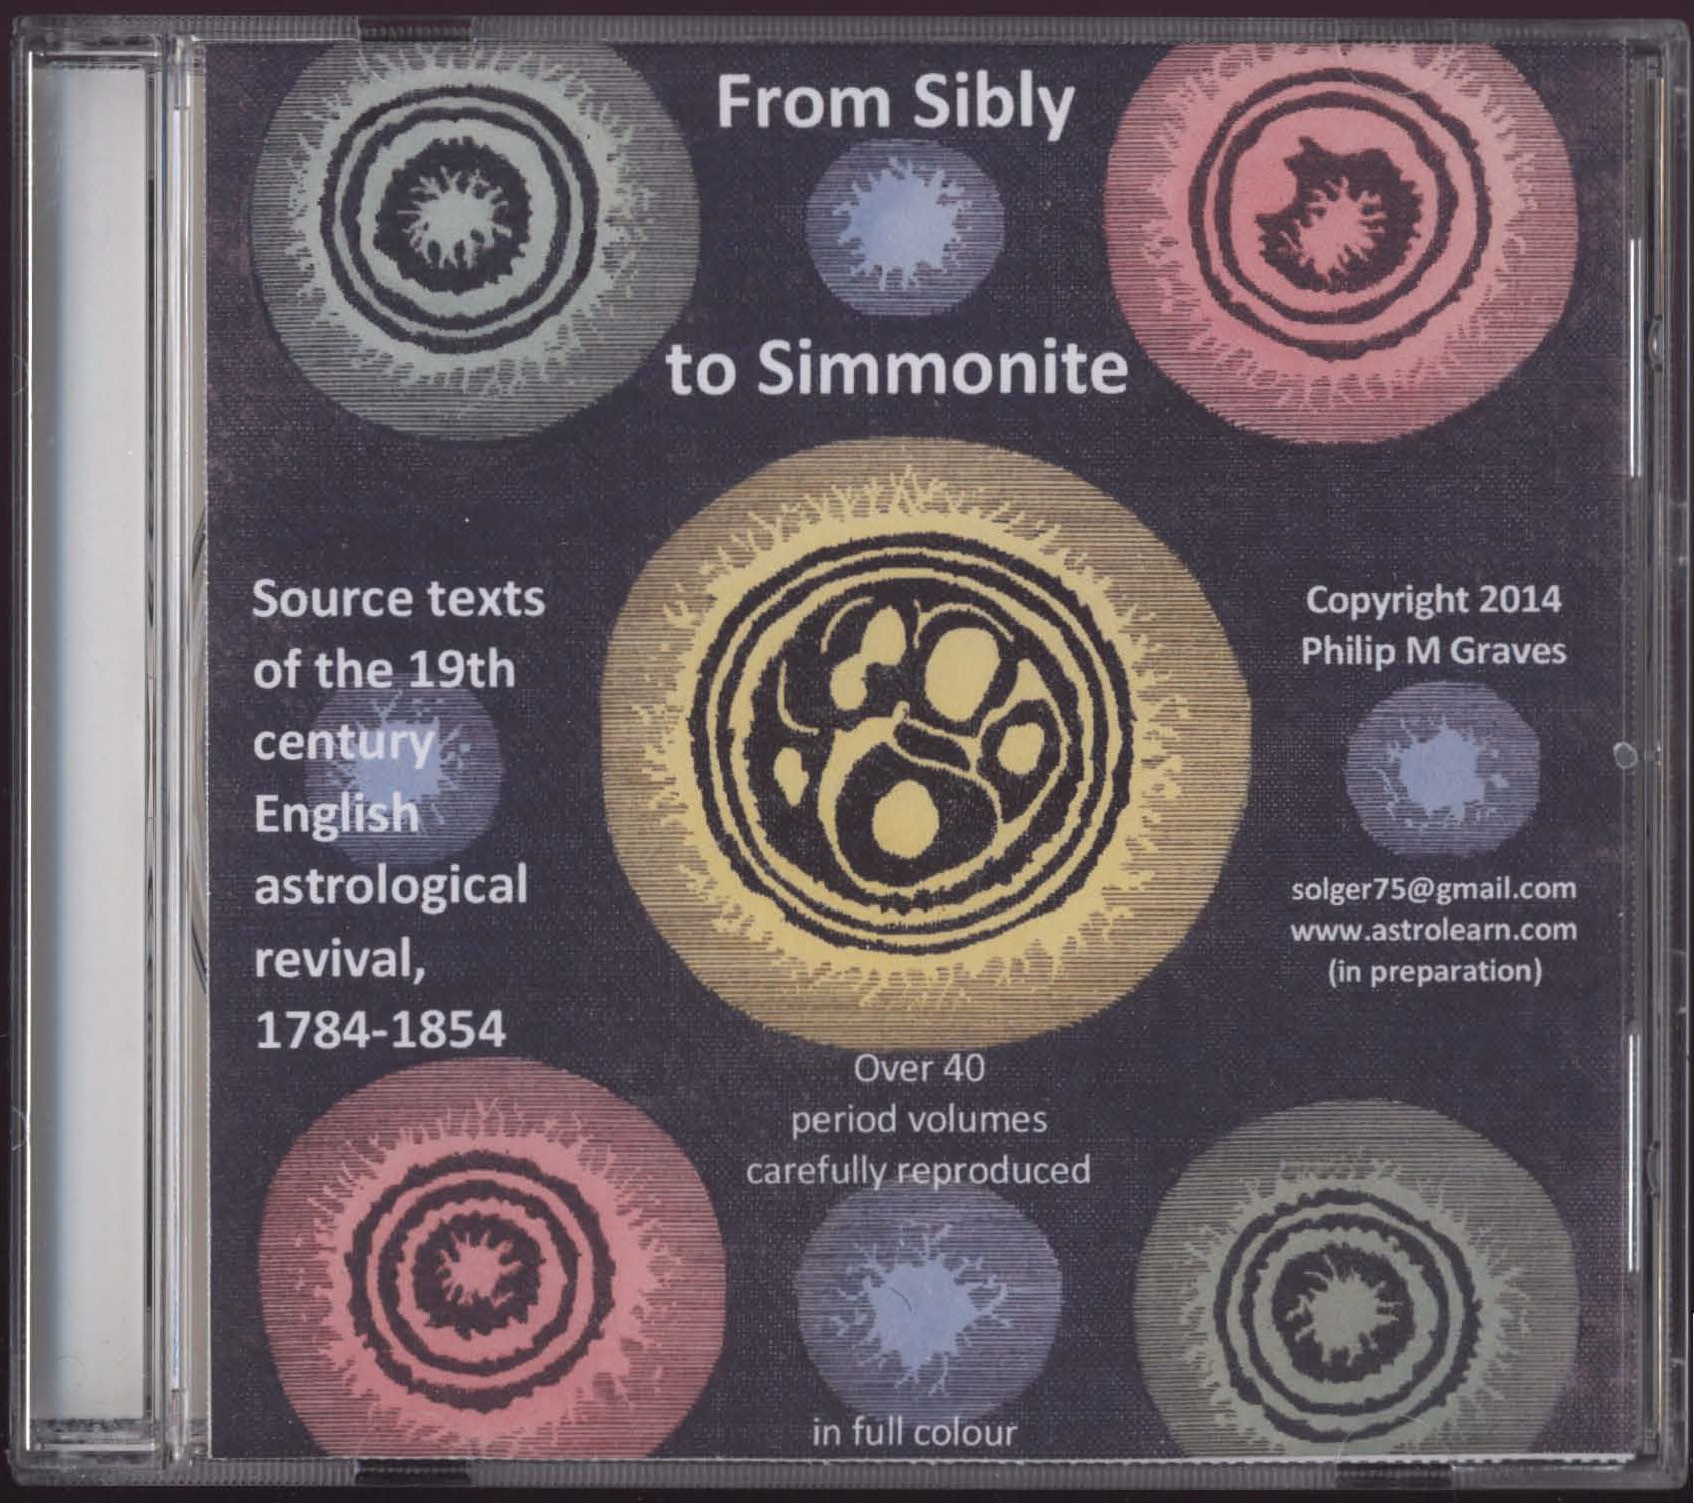 From Sibly to Simmonite: Source Texts of the 19th century English astrological revival DVD, Front Cover